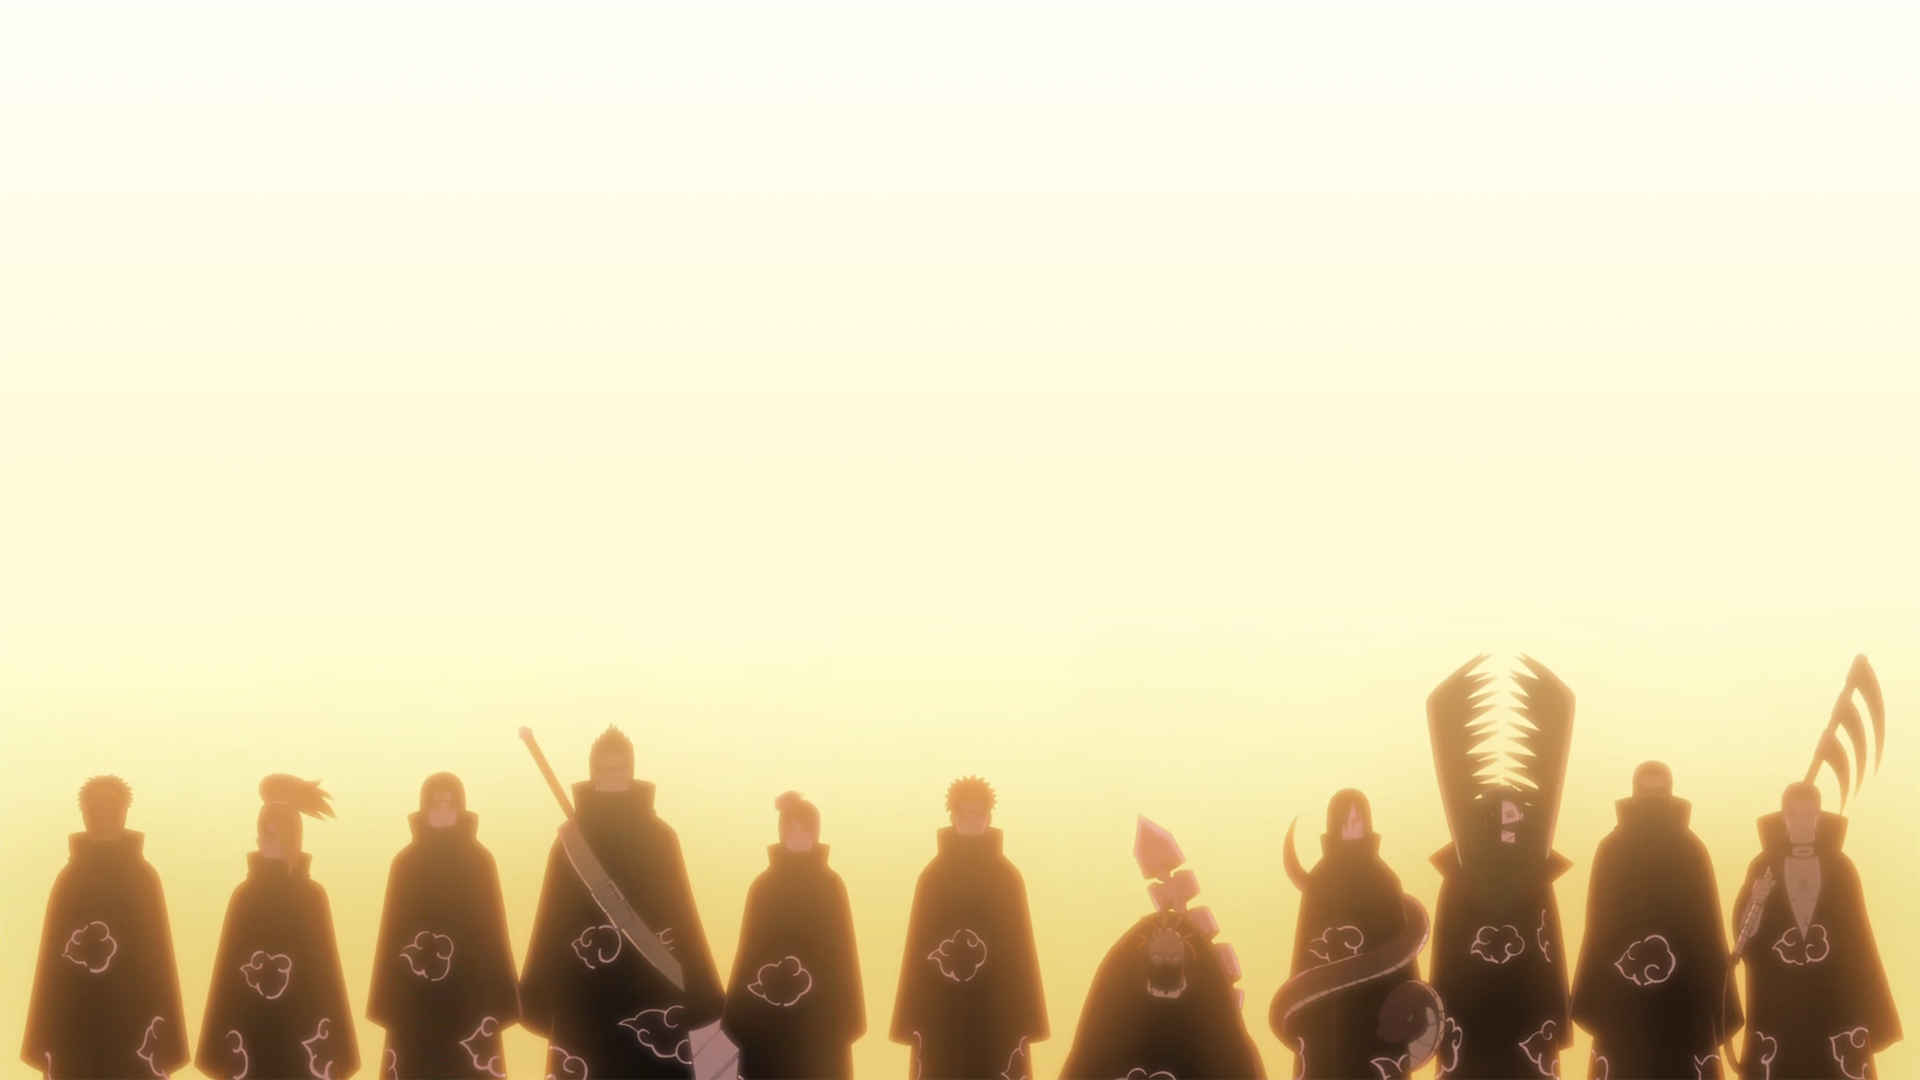 Wonderful Wallpaper Naruto Silhouette - 1ce780d373771c8260bf18a4323681b5  Picture.png